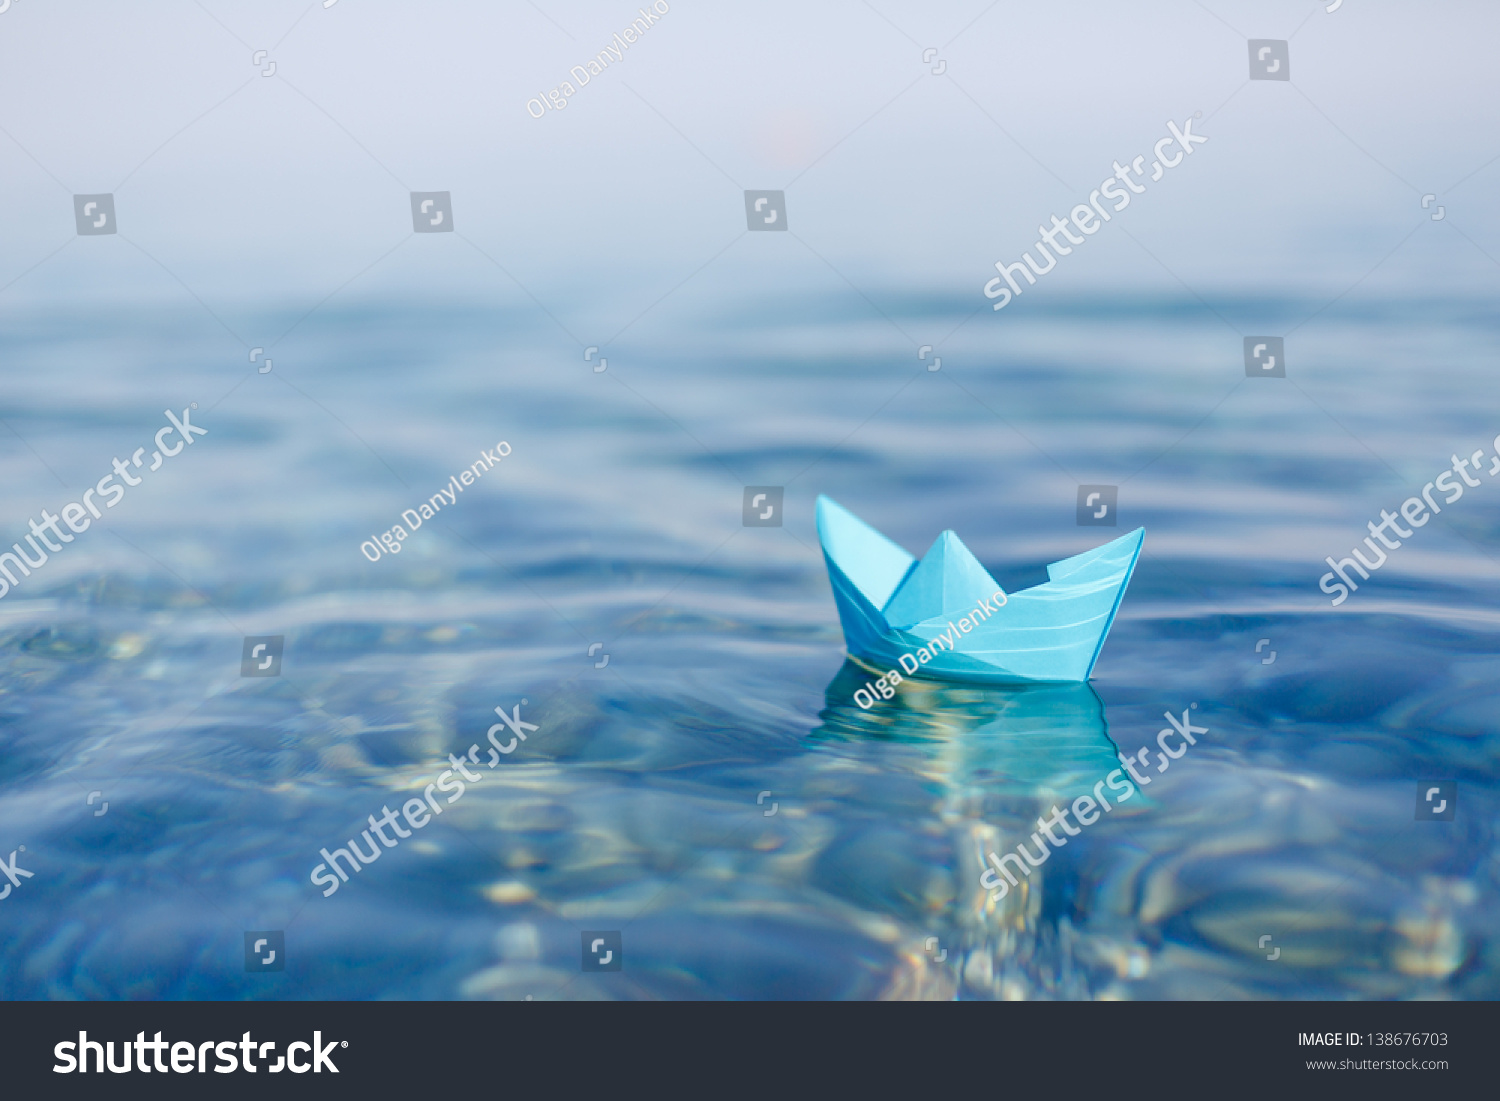 Research paper on surface water